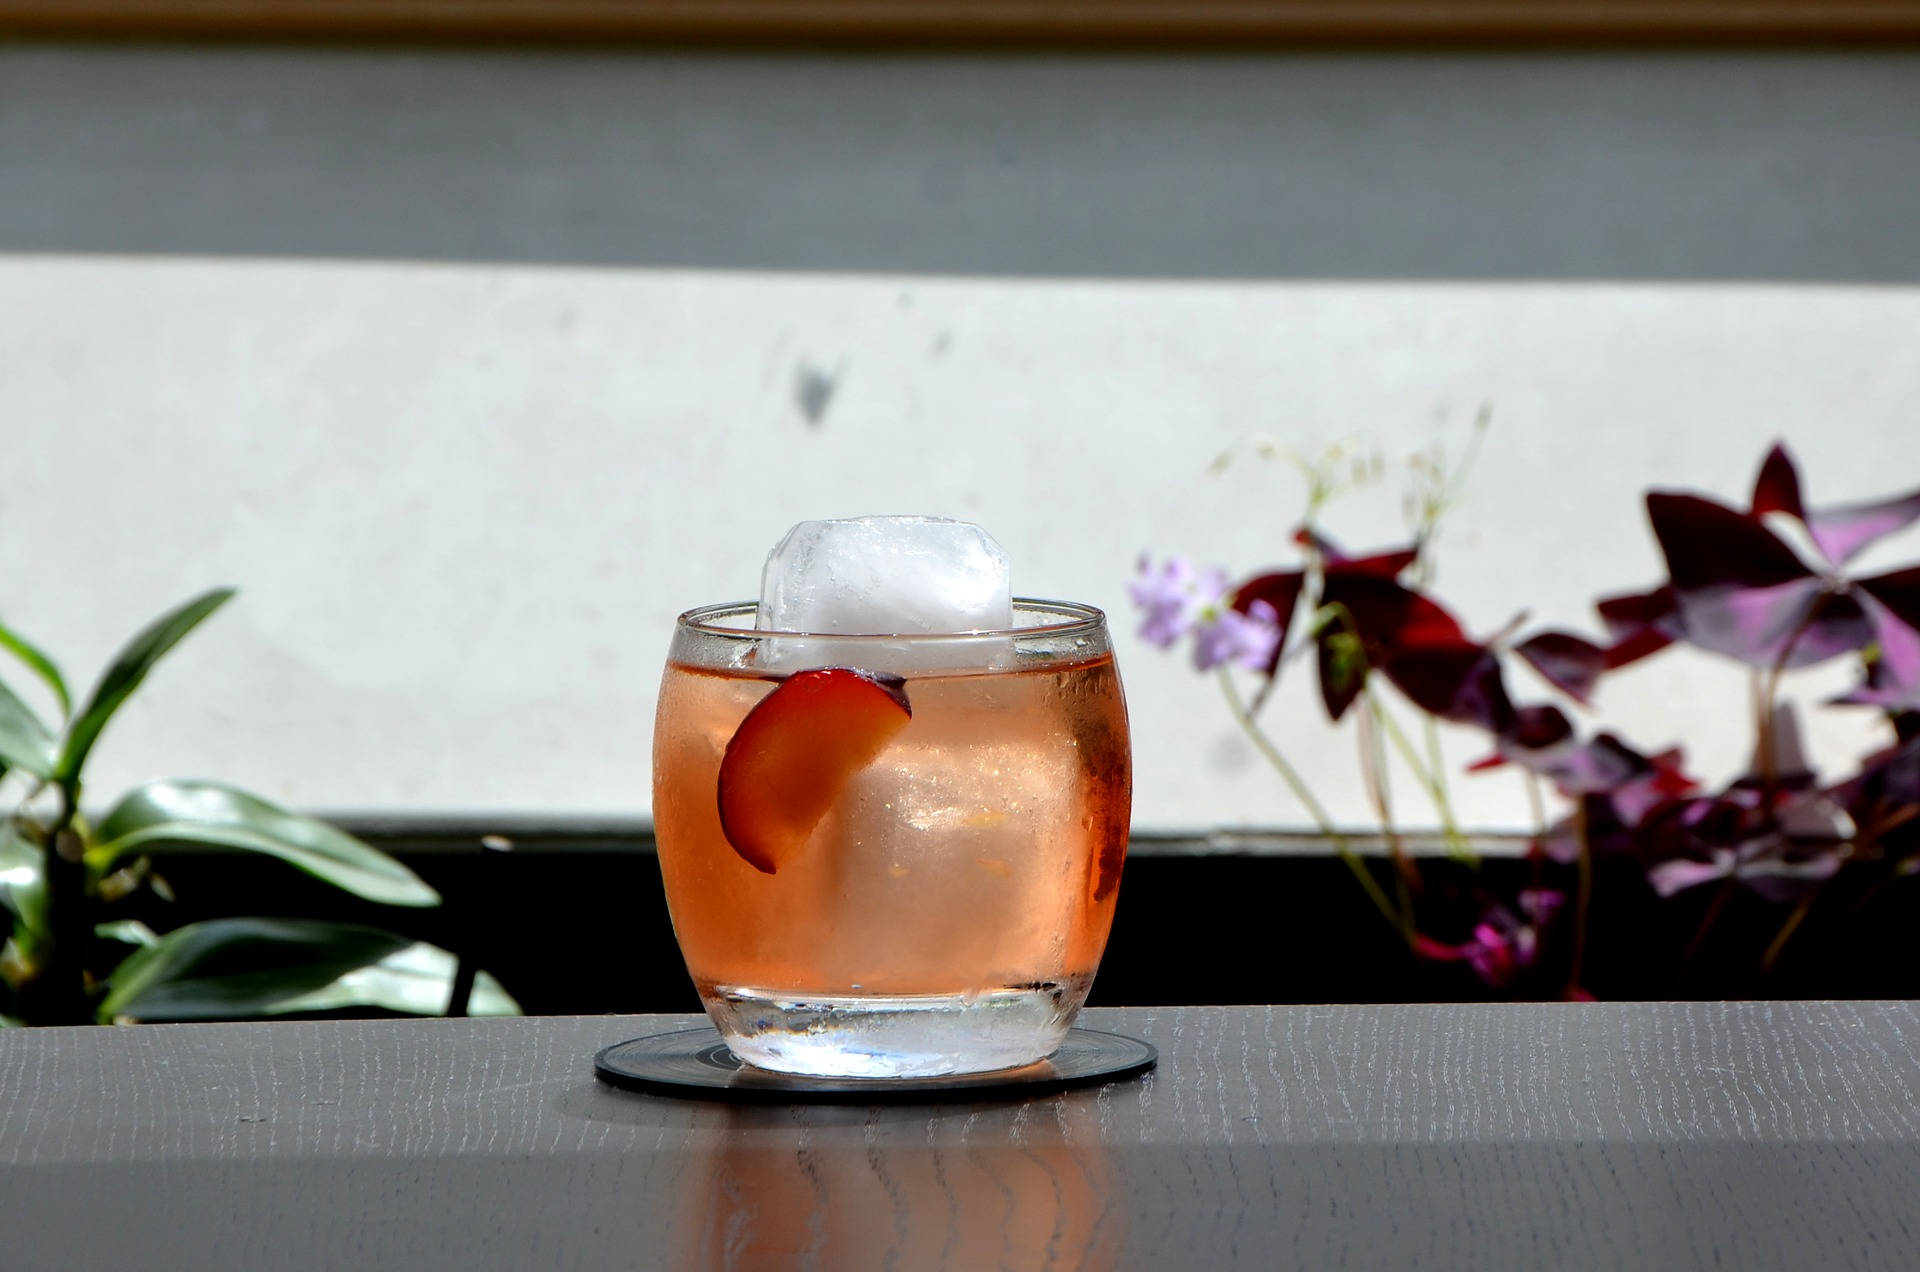 The Negroni is a classic cocktail made from equal parts gin, vermouth, and Campari.